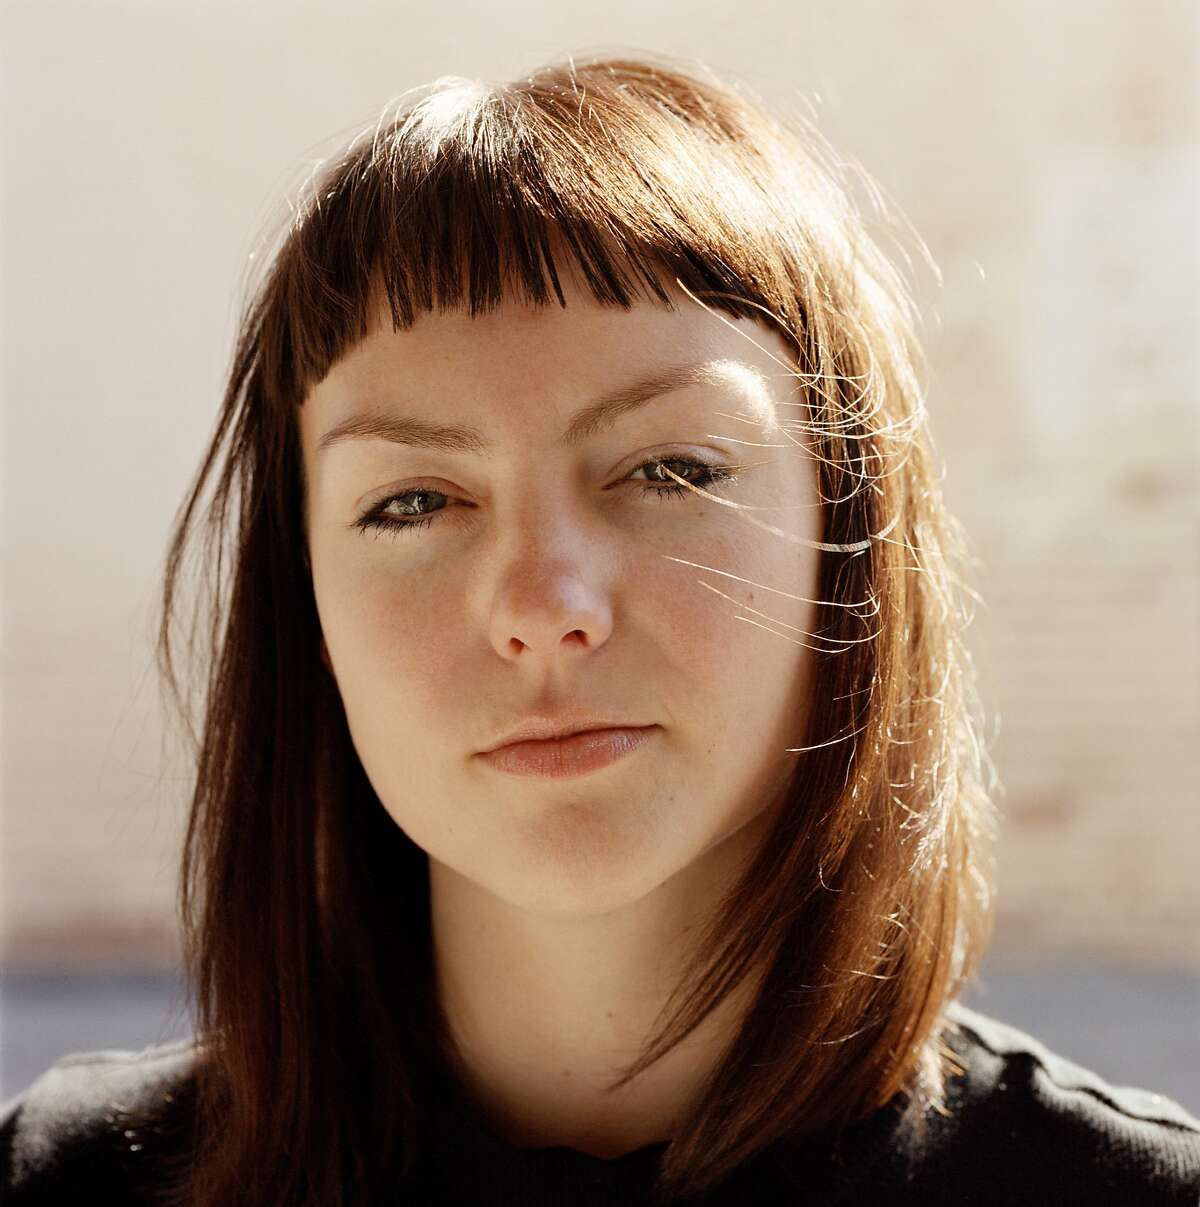 Angel Olsen performs at the Fillmore on Feb. 15-16.